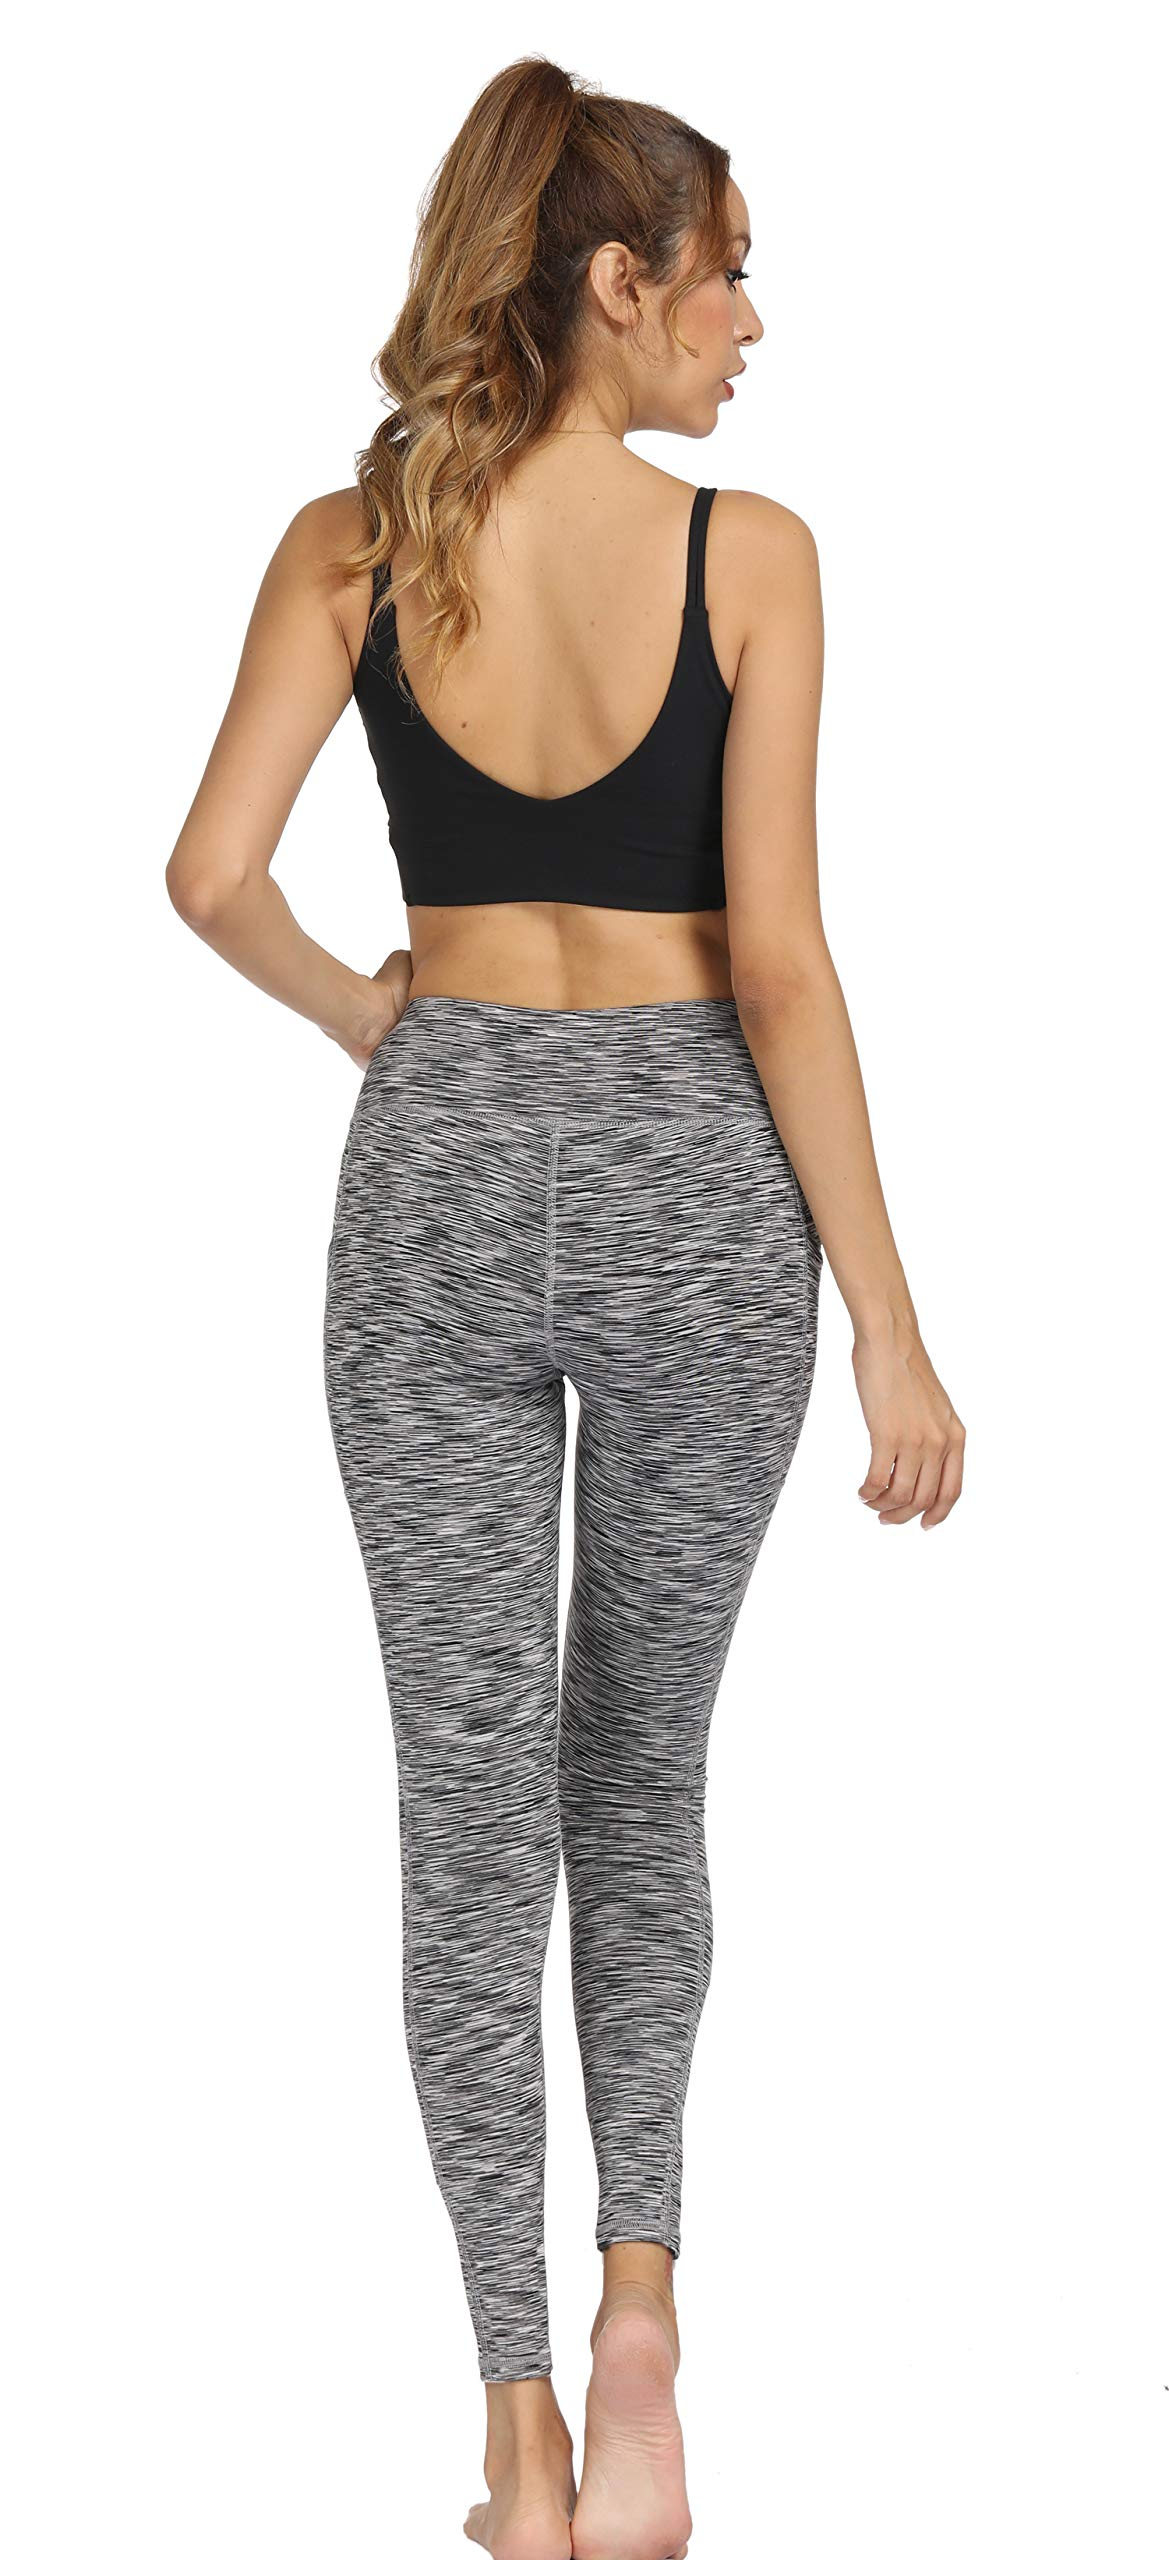 Fengbay High Waist Yoga Pants, Pocket Yoga Pants Tummy Control Workout Running 4 Way Stretch Yoga Leggings (X-Small, 1554 Gery) by Fengbay (Image #5)